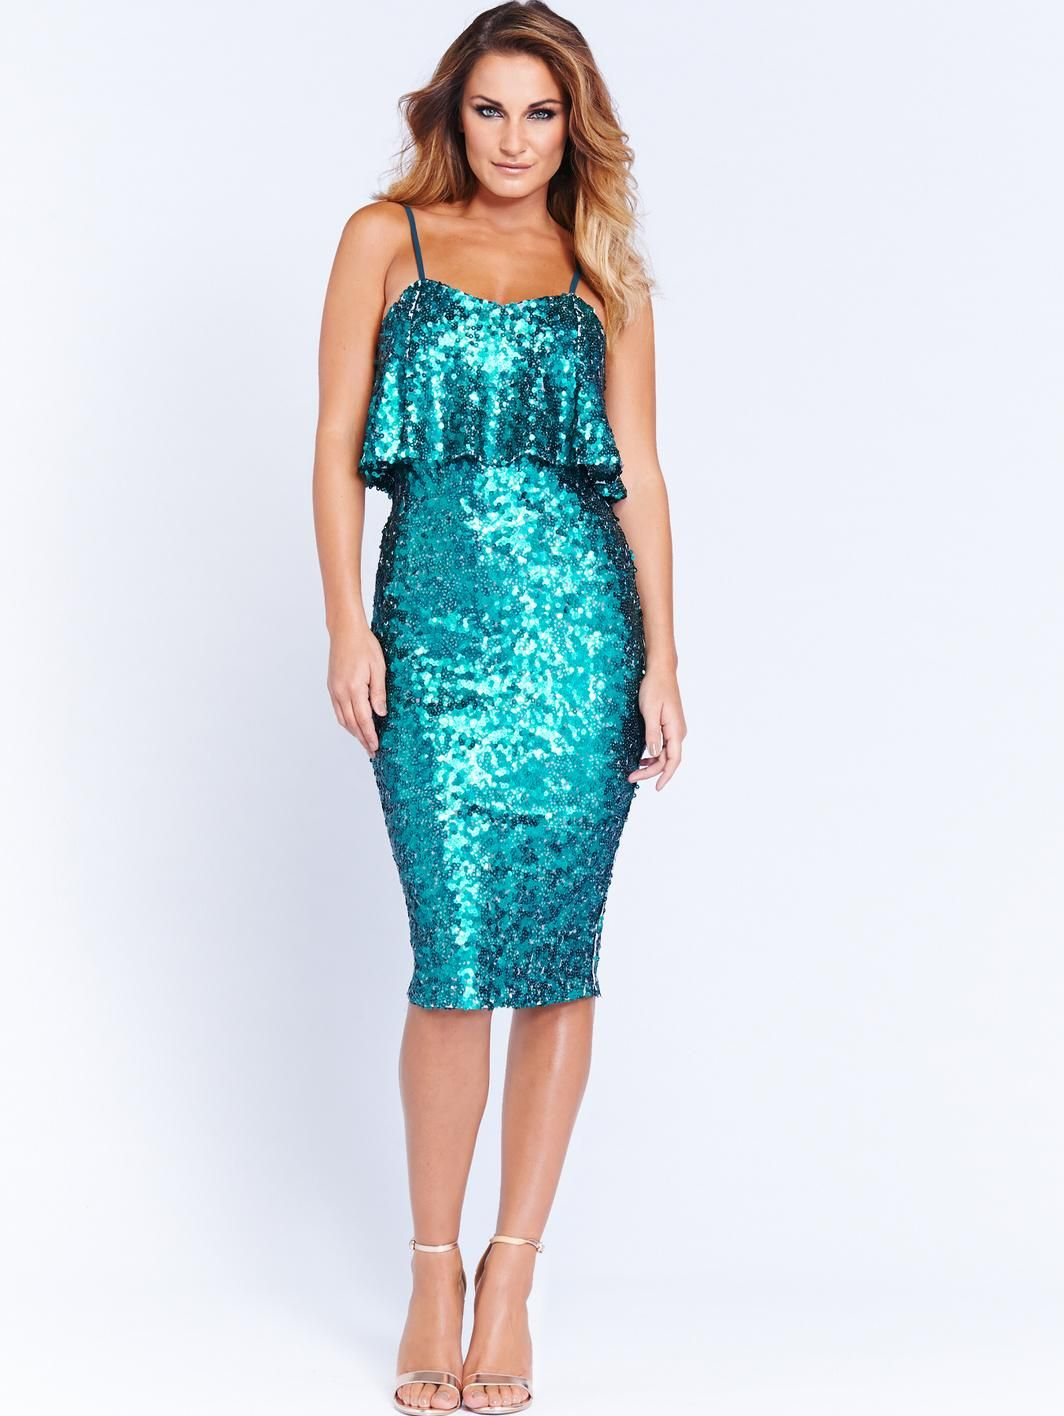 Sequin Cami Top Dress, http://www.very.co.uk/sam-faiers-sequin-cami ...